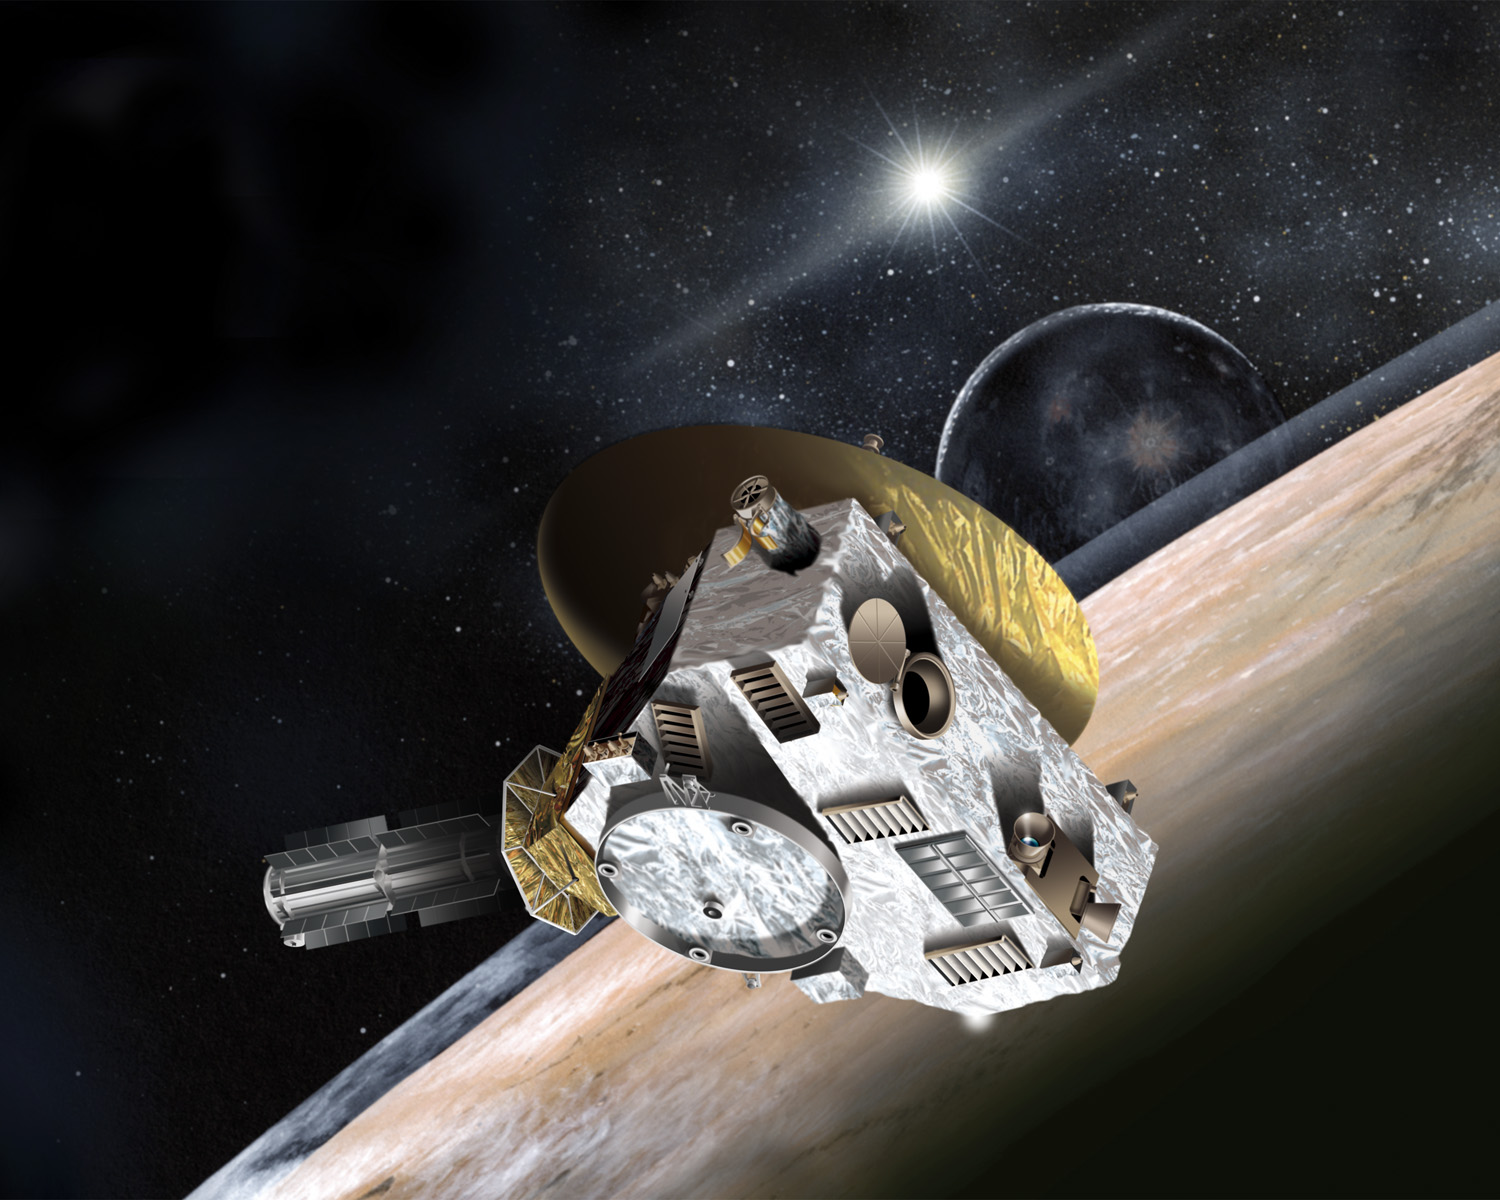 An illustration of NASA's New Horizons Spacecraft